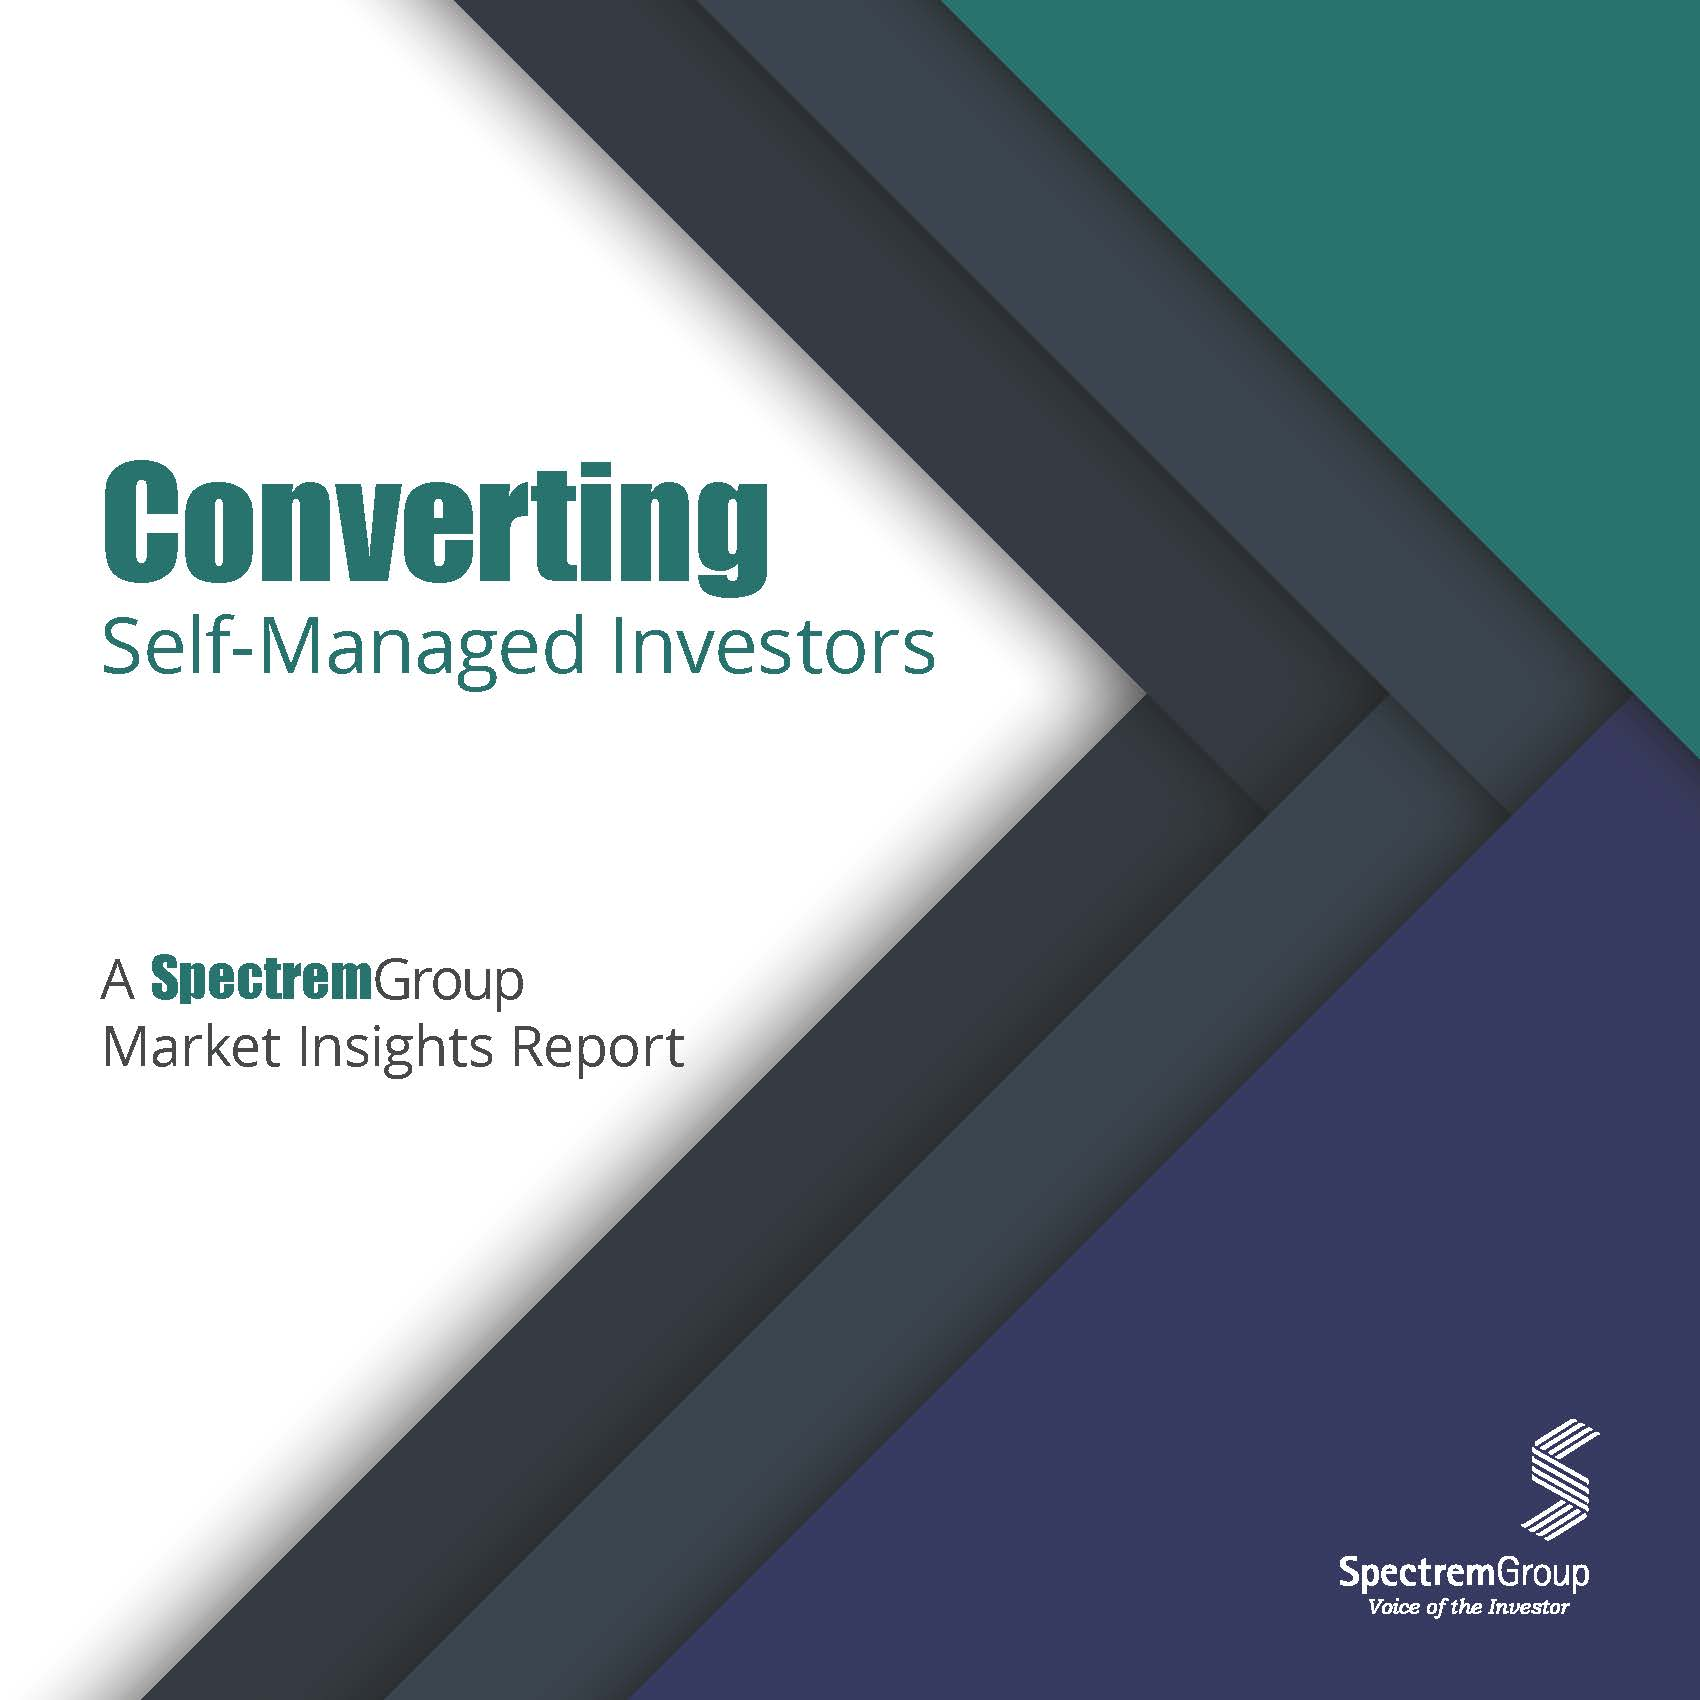 Converting Self-Managed Investors - A Spectrem Group Market Insights Report